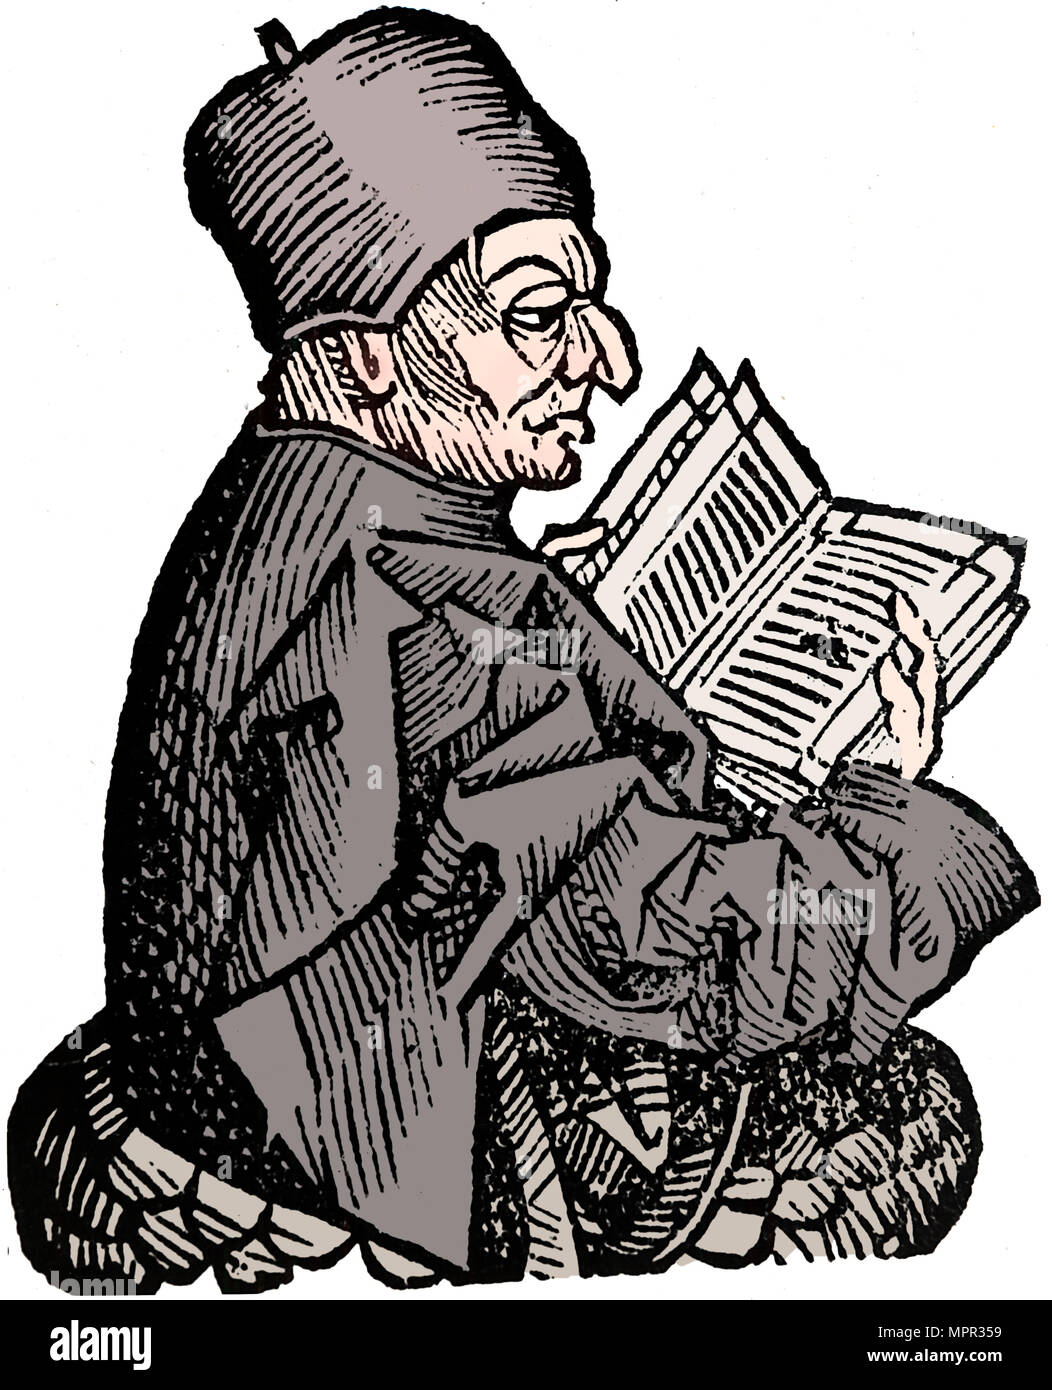 The Venerable Bede (c673-735), Anglo-Saxon theologian, scholar and historian, 1493. Artist: Unknown. - Stock Image